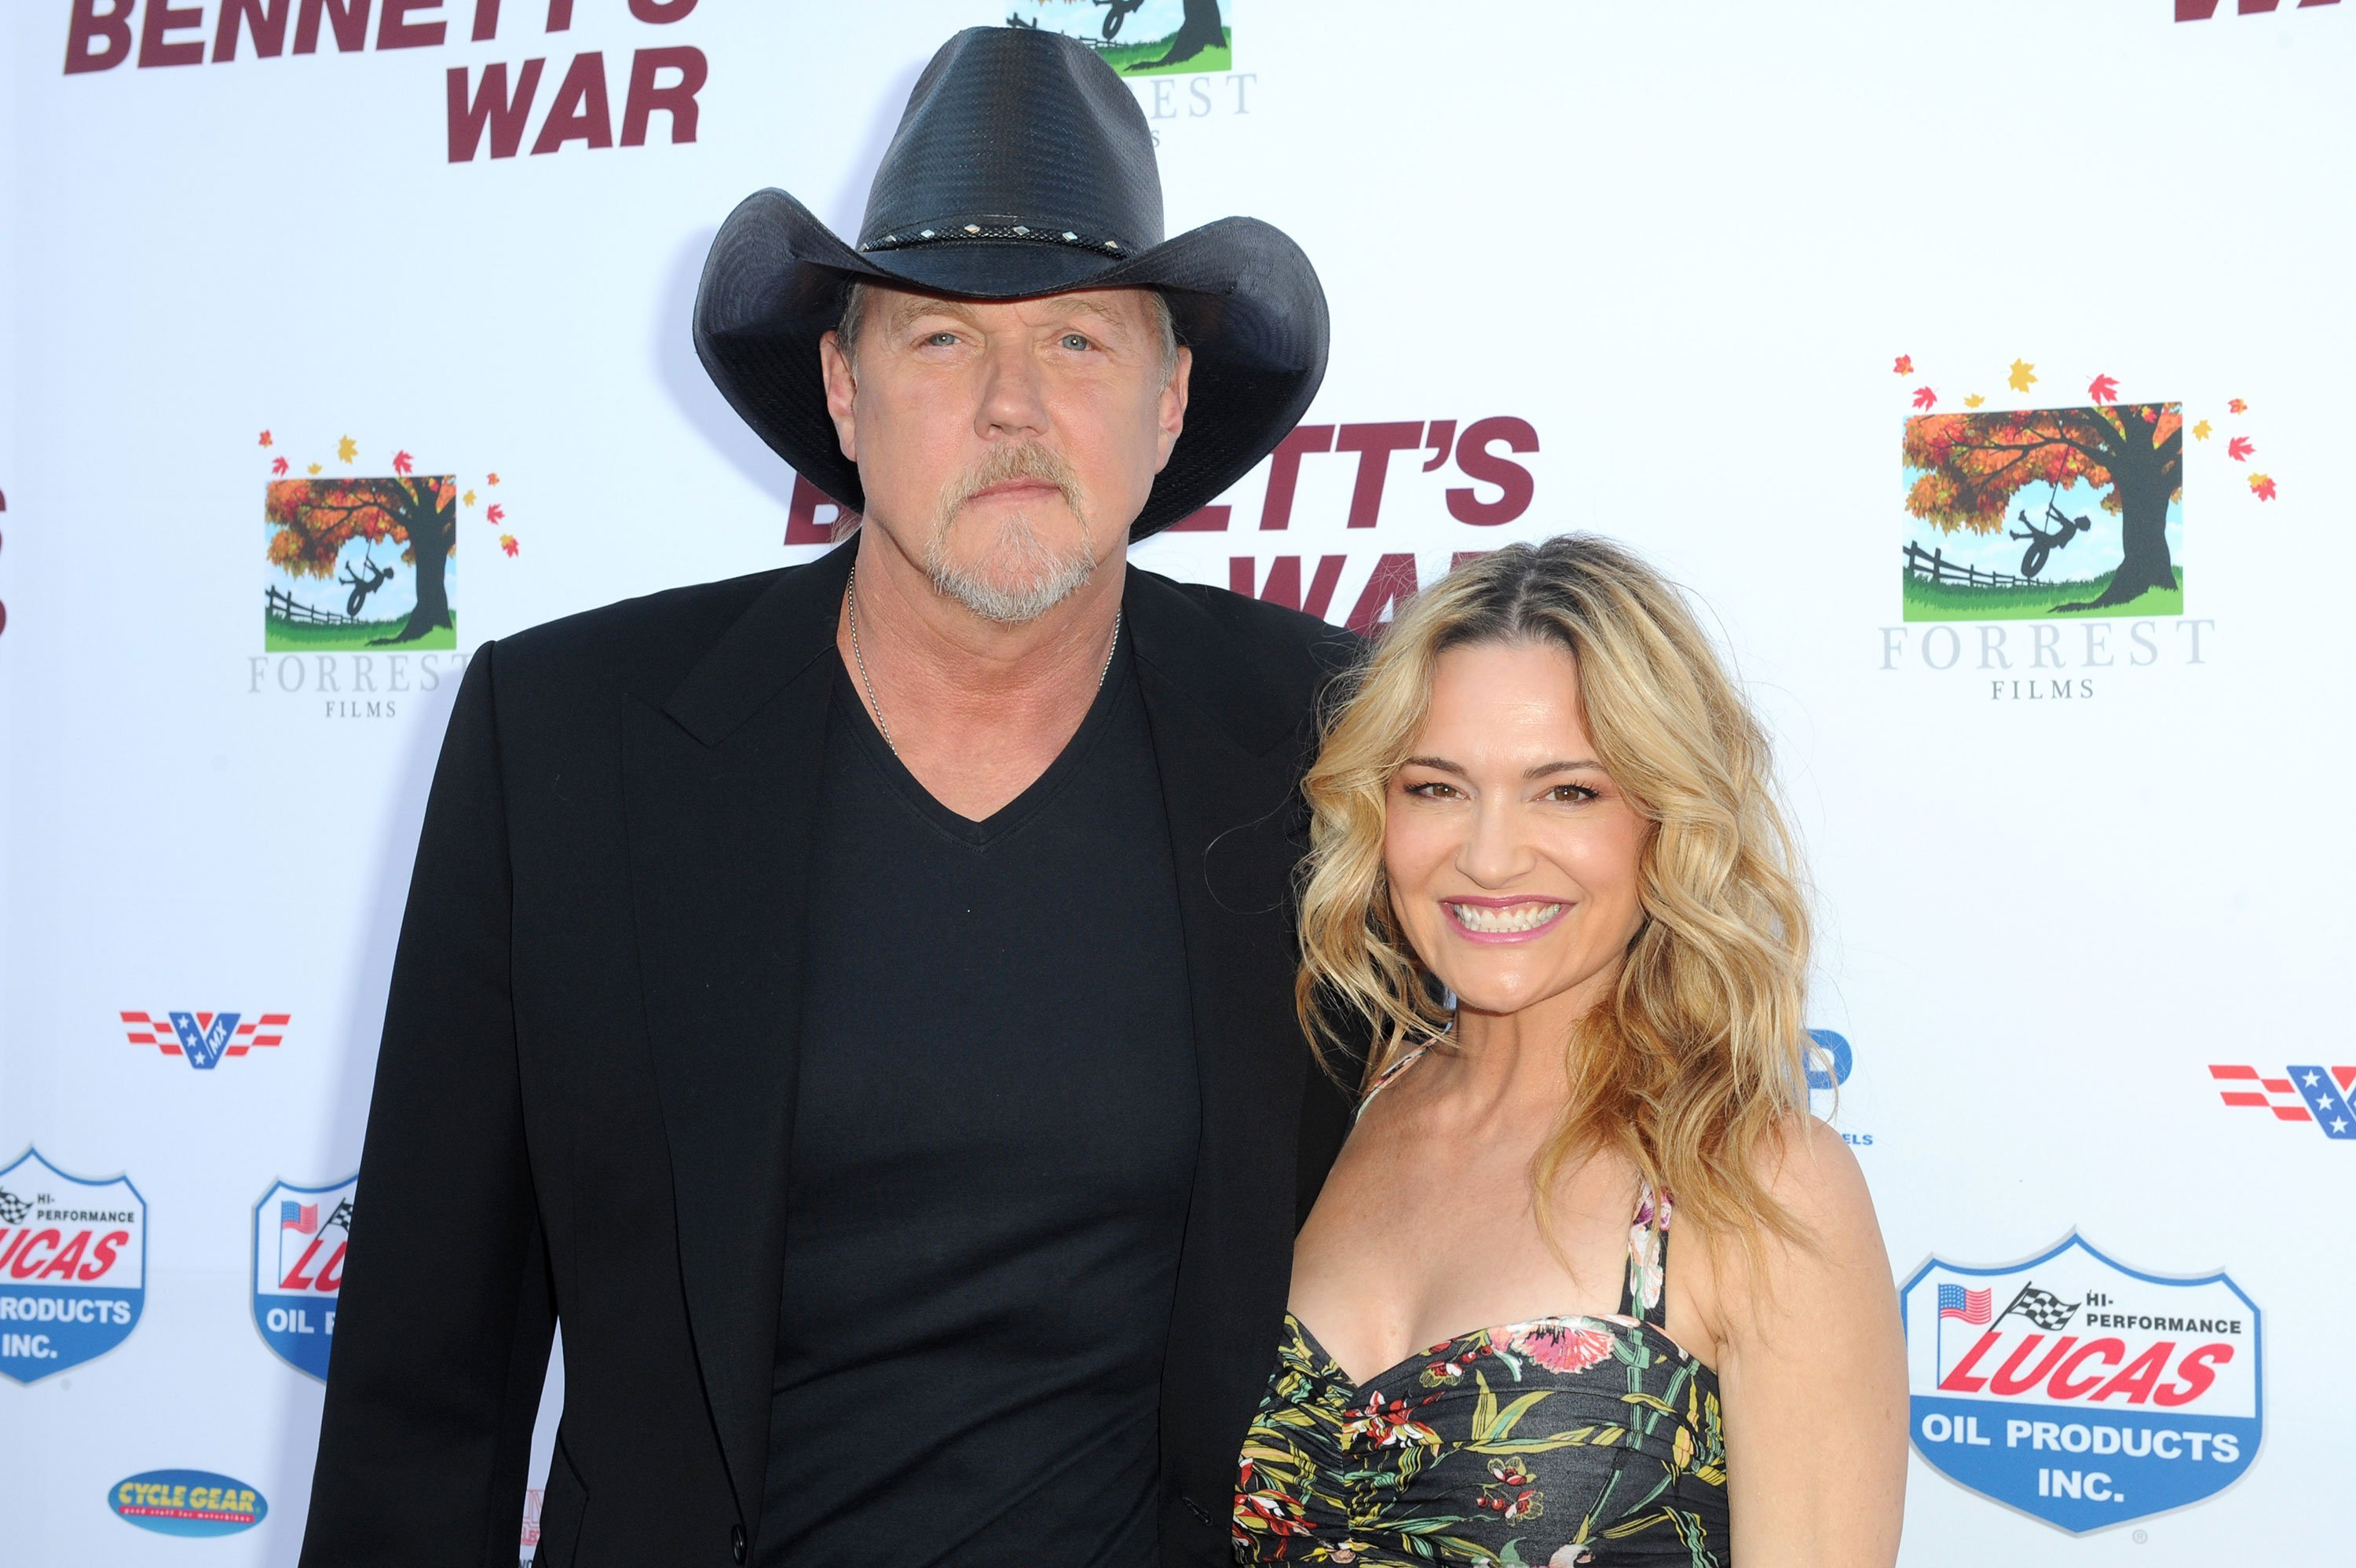 Trace Adkins marries actress Victoria Pratt with an assist from Blake Shelton